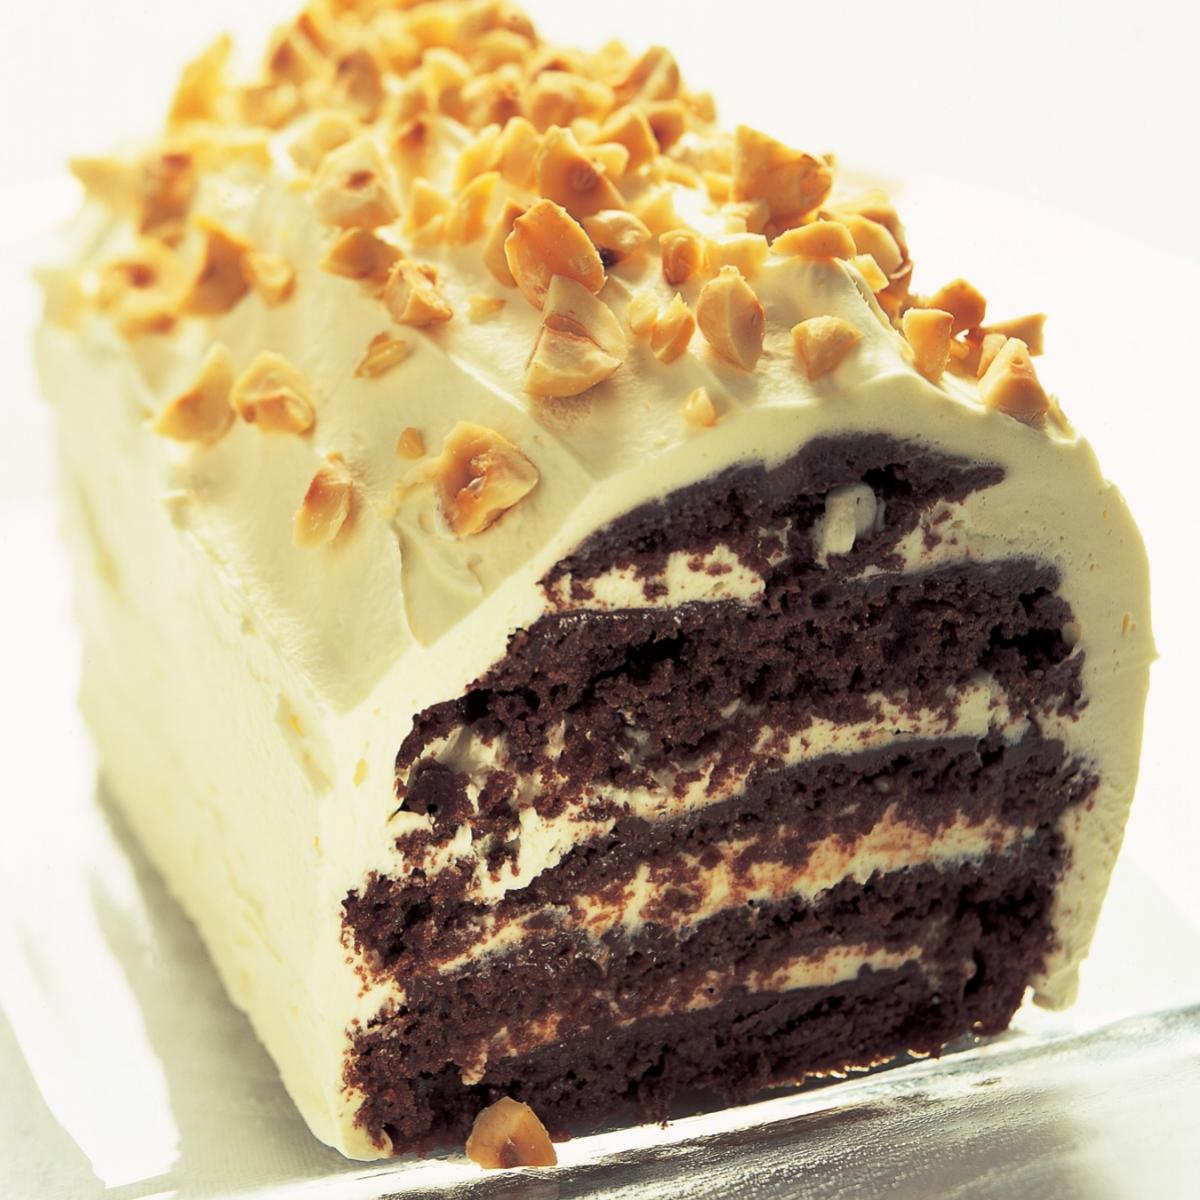 A picture of Delia's Cheat's Chocolate Rum Gateau recipe